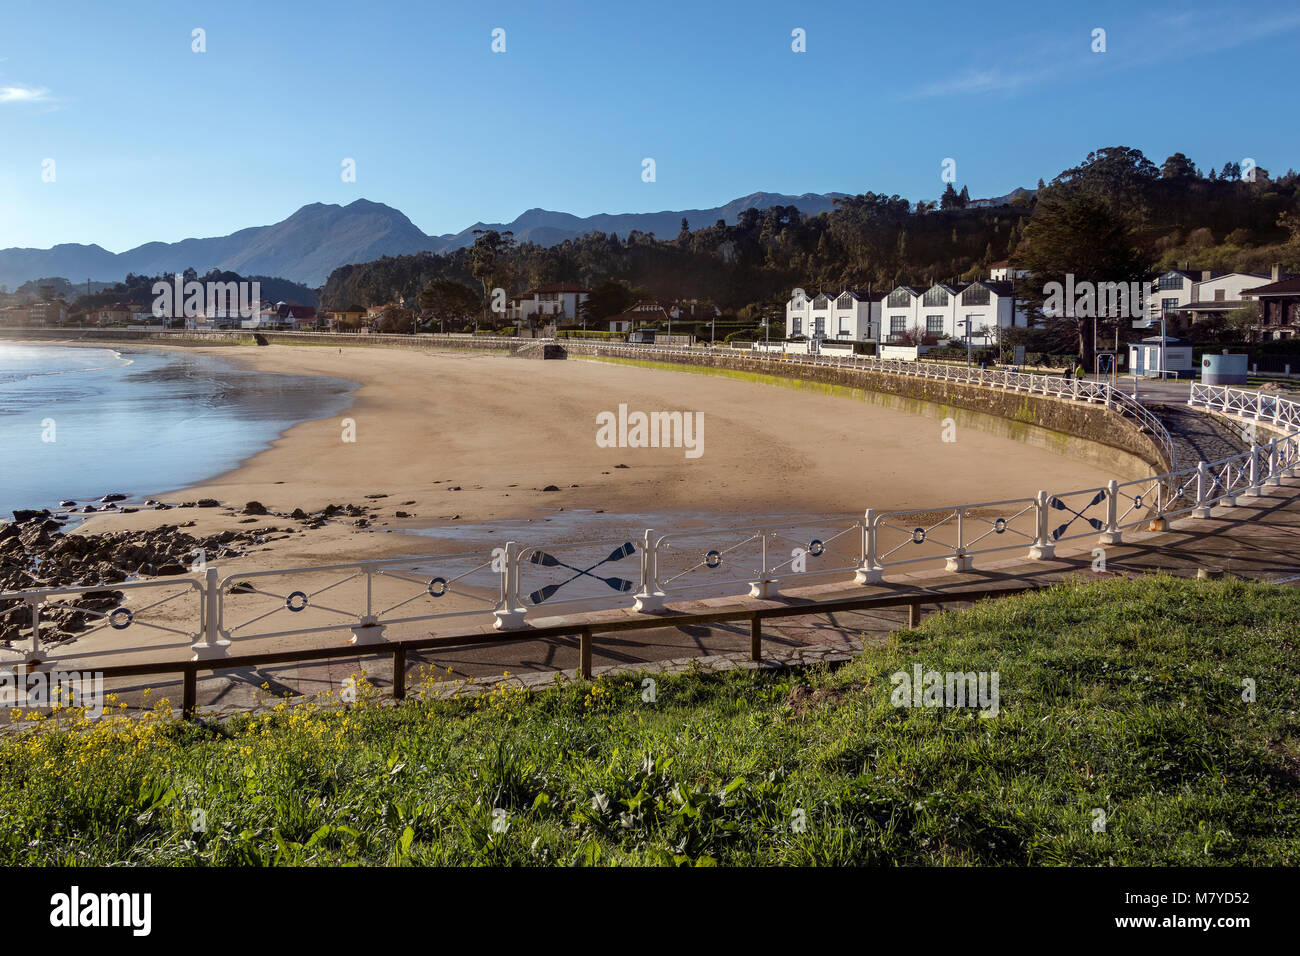 The waterfront at Rabadesella in the Asturias region of northern Spain - Stock Image